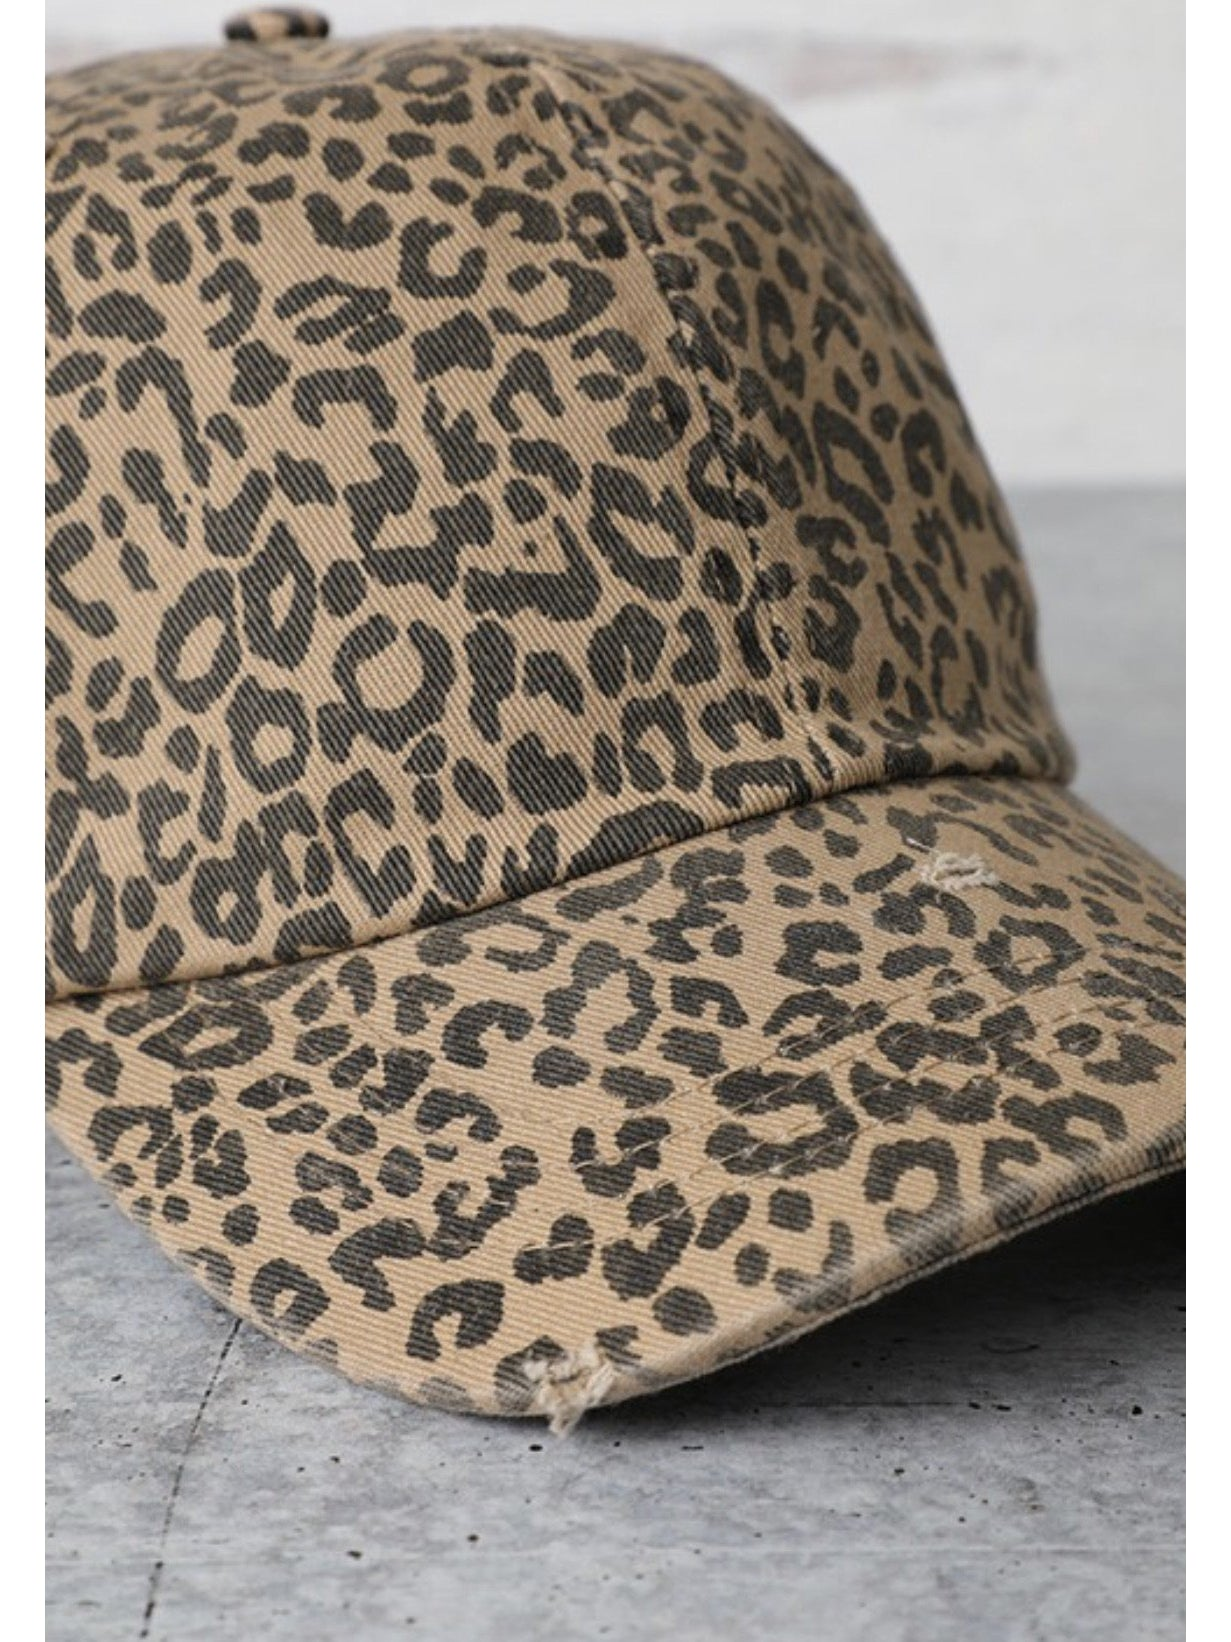 THE CANVAS LEOPARD HAT